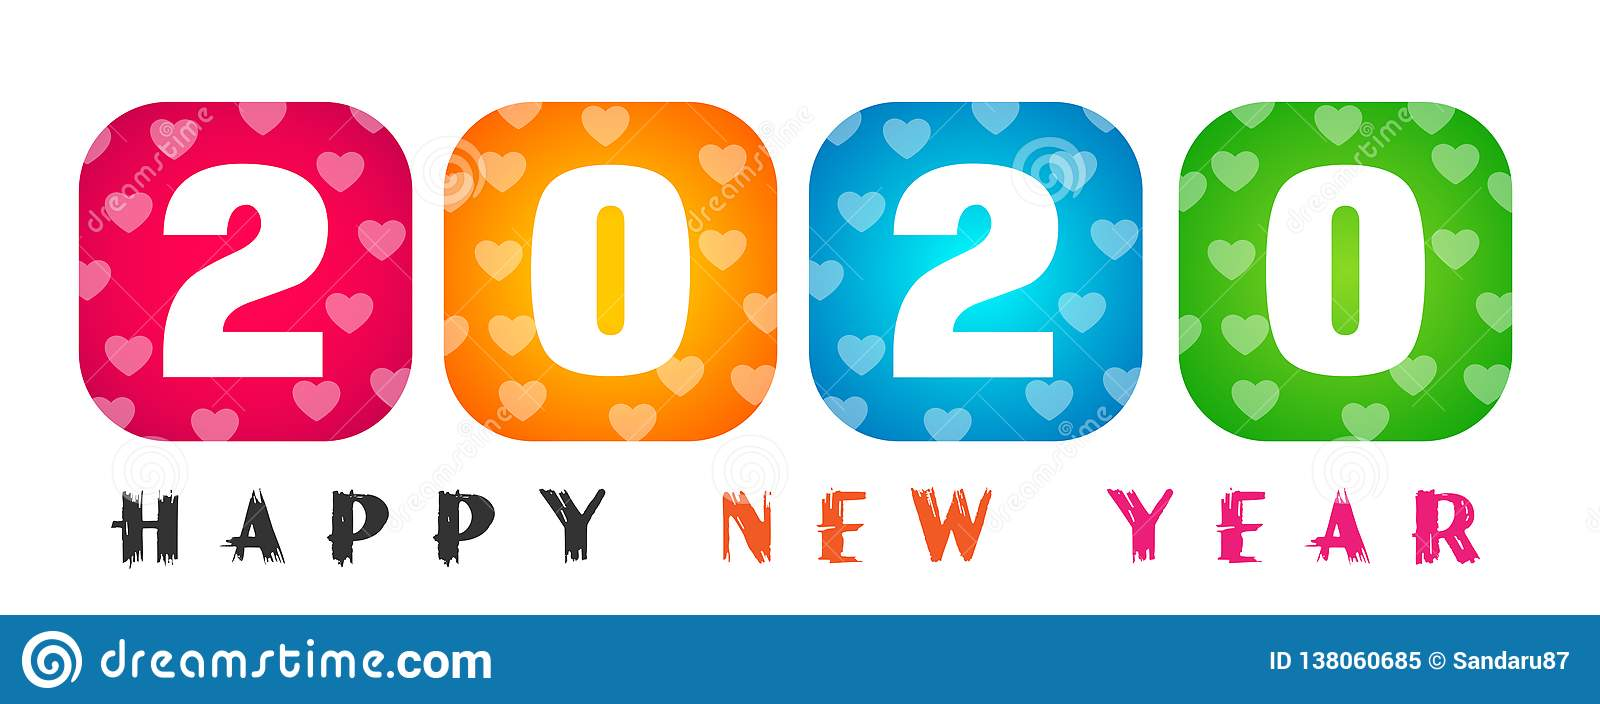 Happy New Year Clipart 2020.Happy New Year 2020 Card And Colorful Greeting Text Design